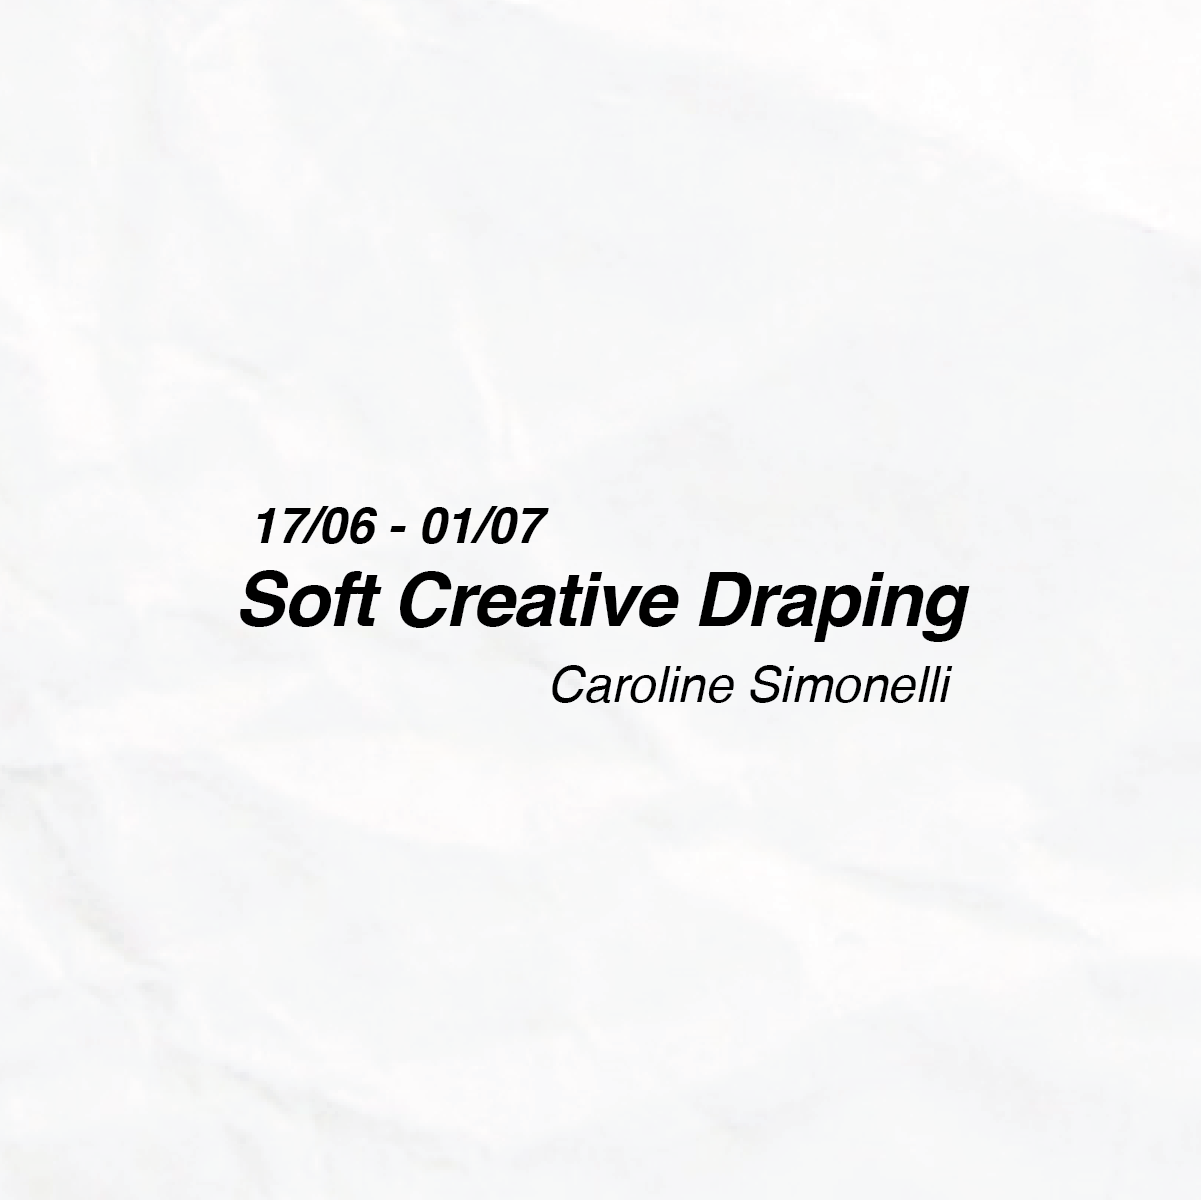 Soft Creative Draping by Caroline Simonelli